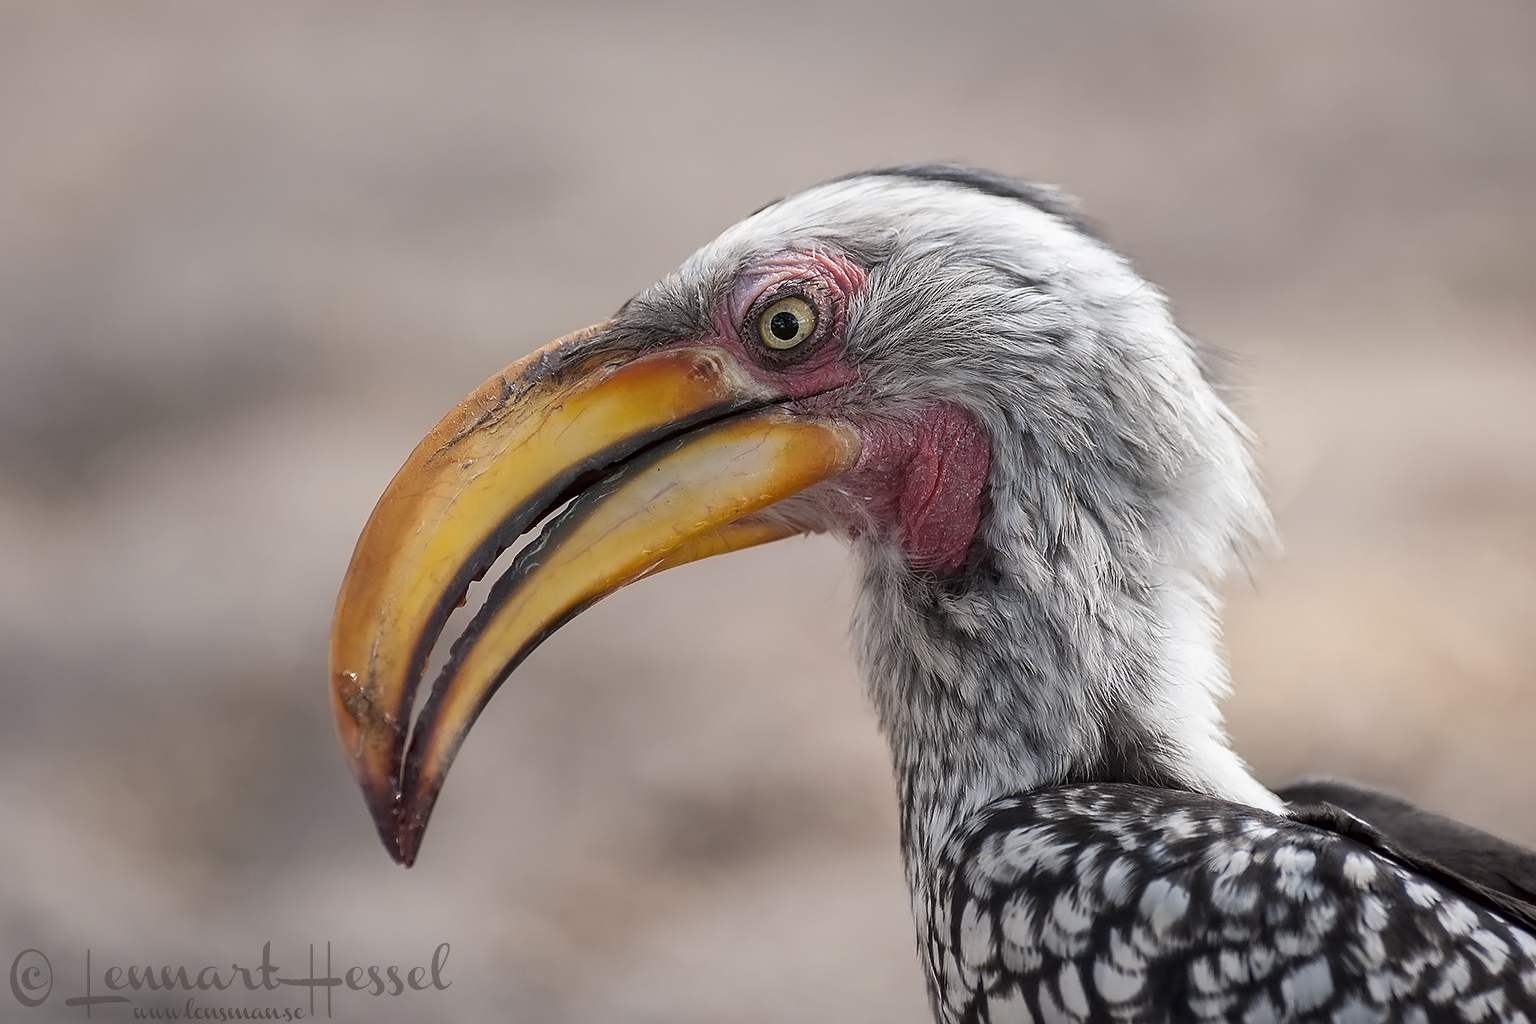 Southern Yellow-billed Hornbill in Khwai Community Area, Botswana